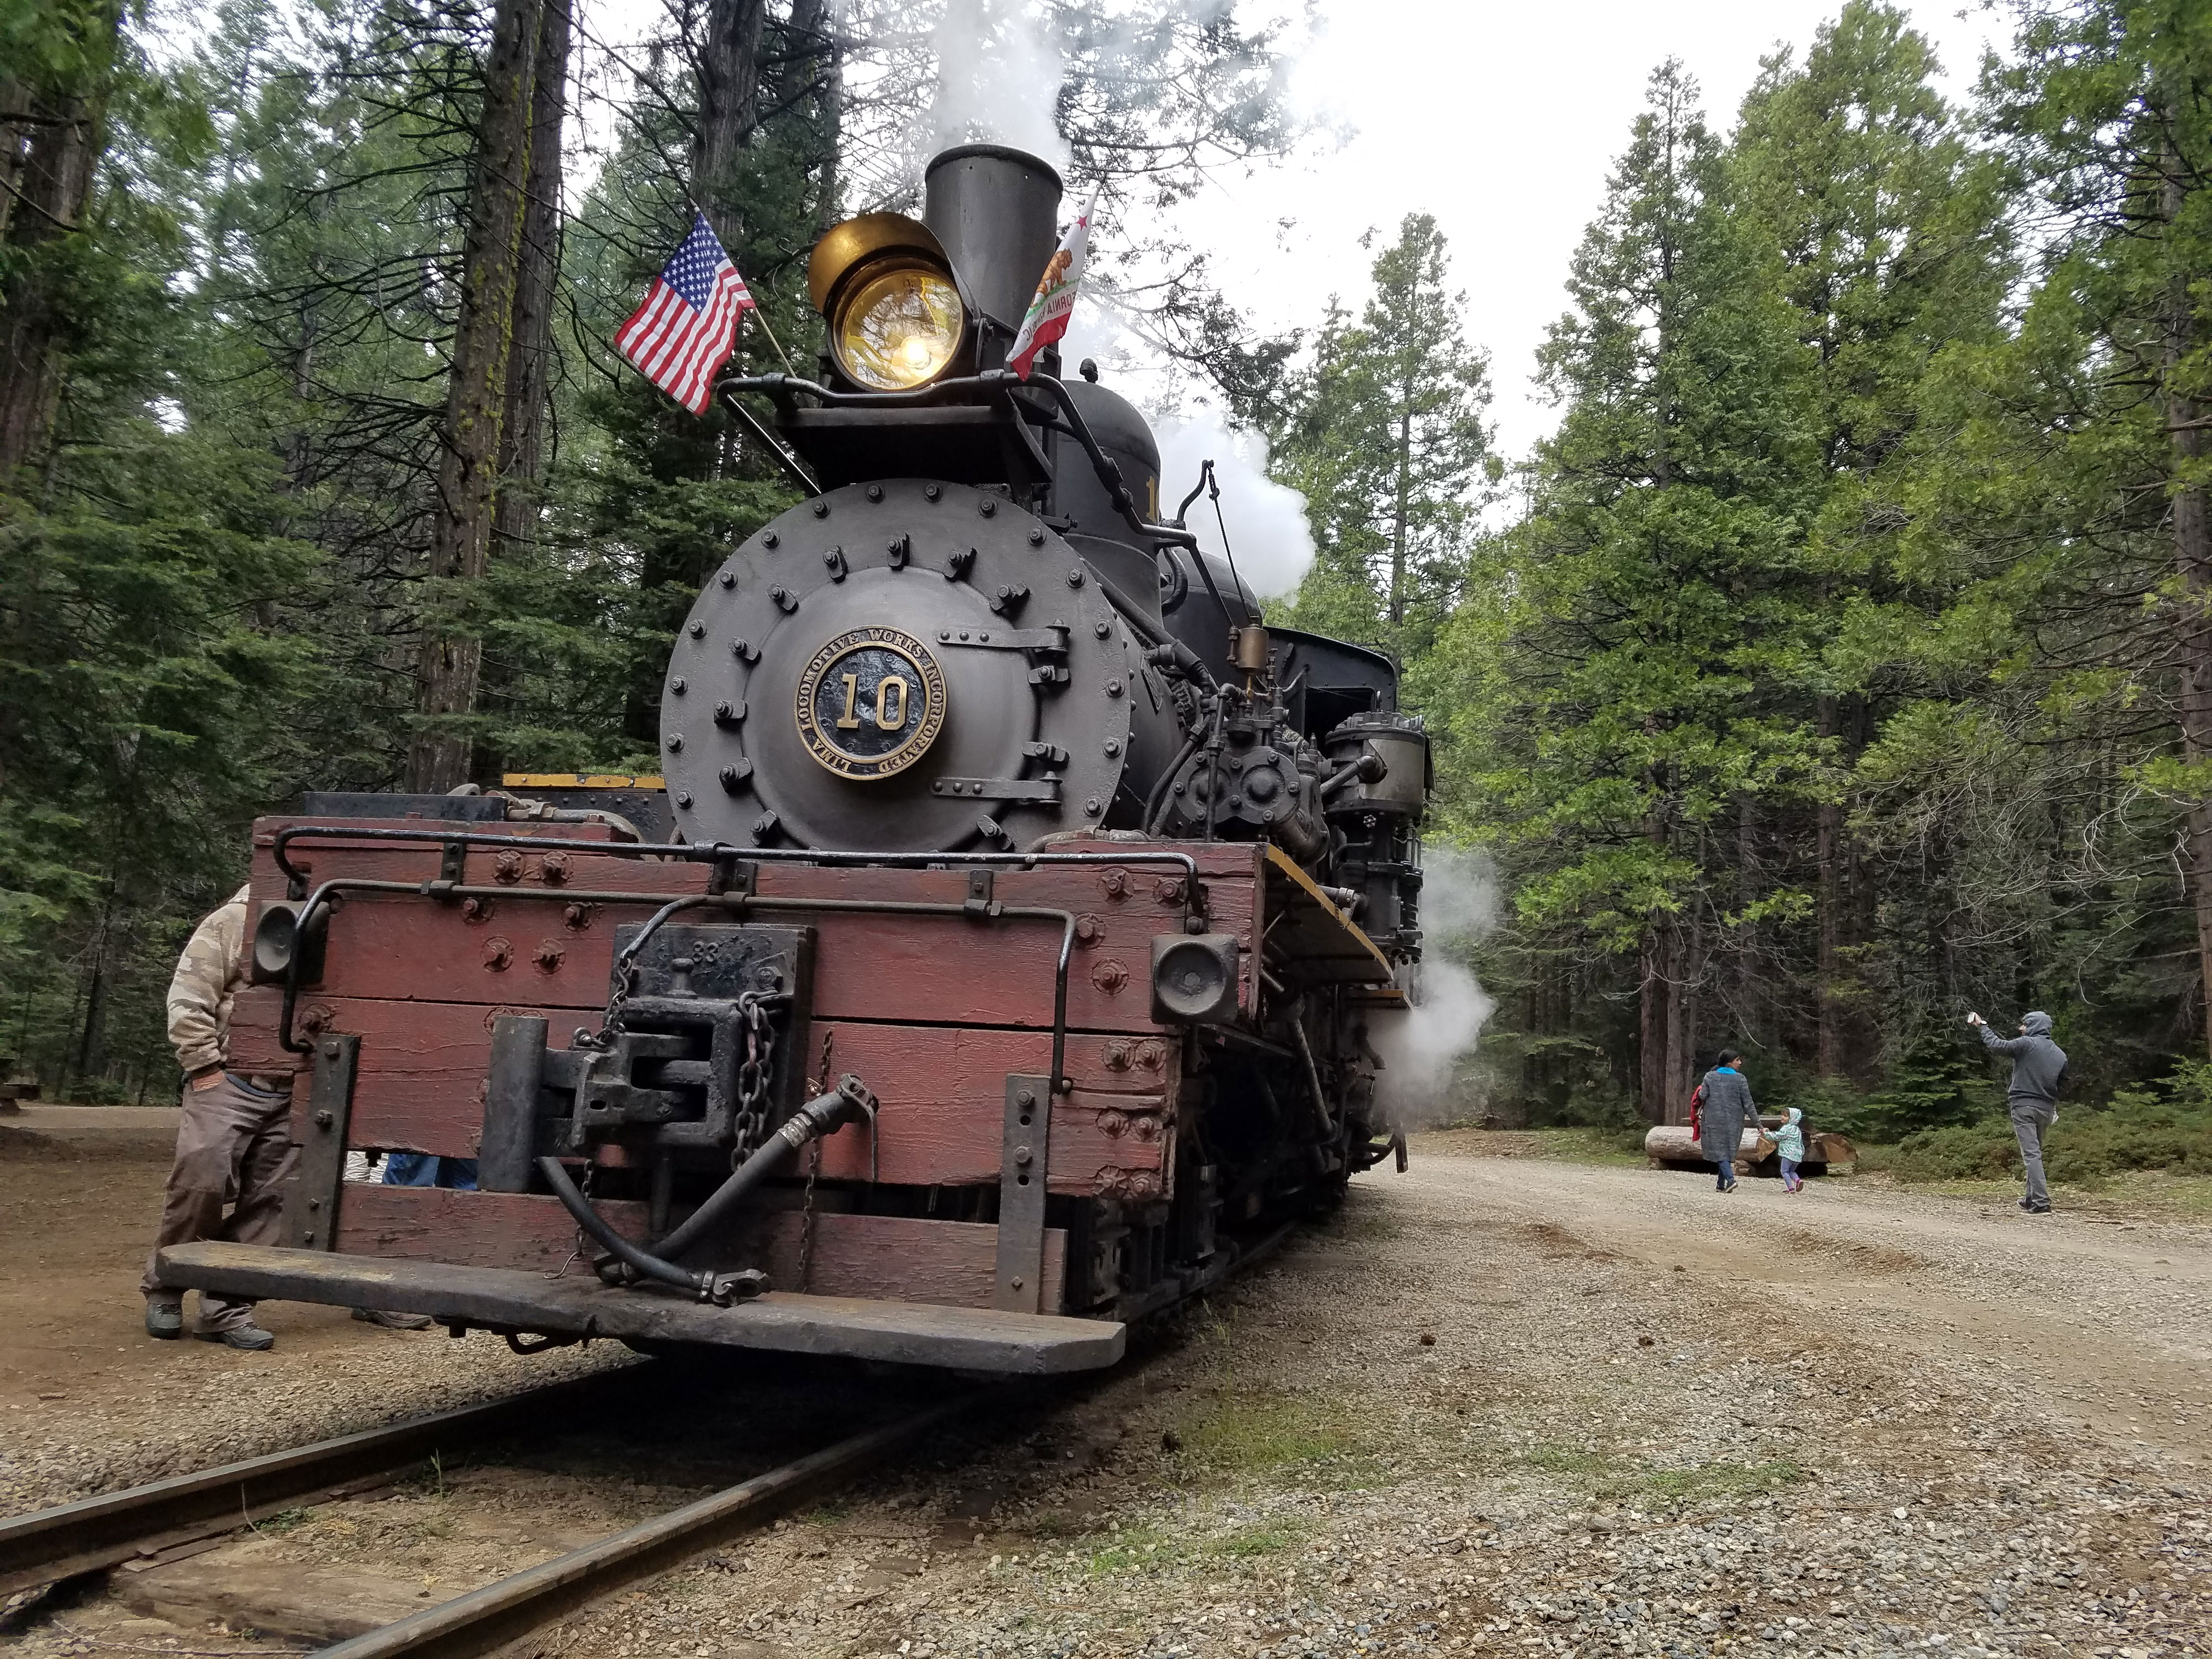 Number One Family Friendly Excursion in Yosemite